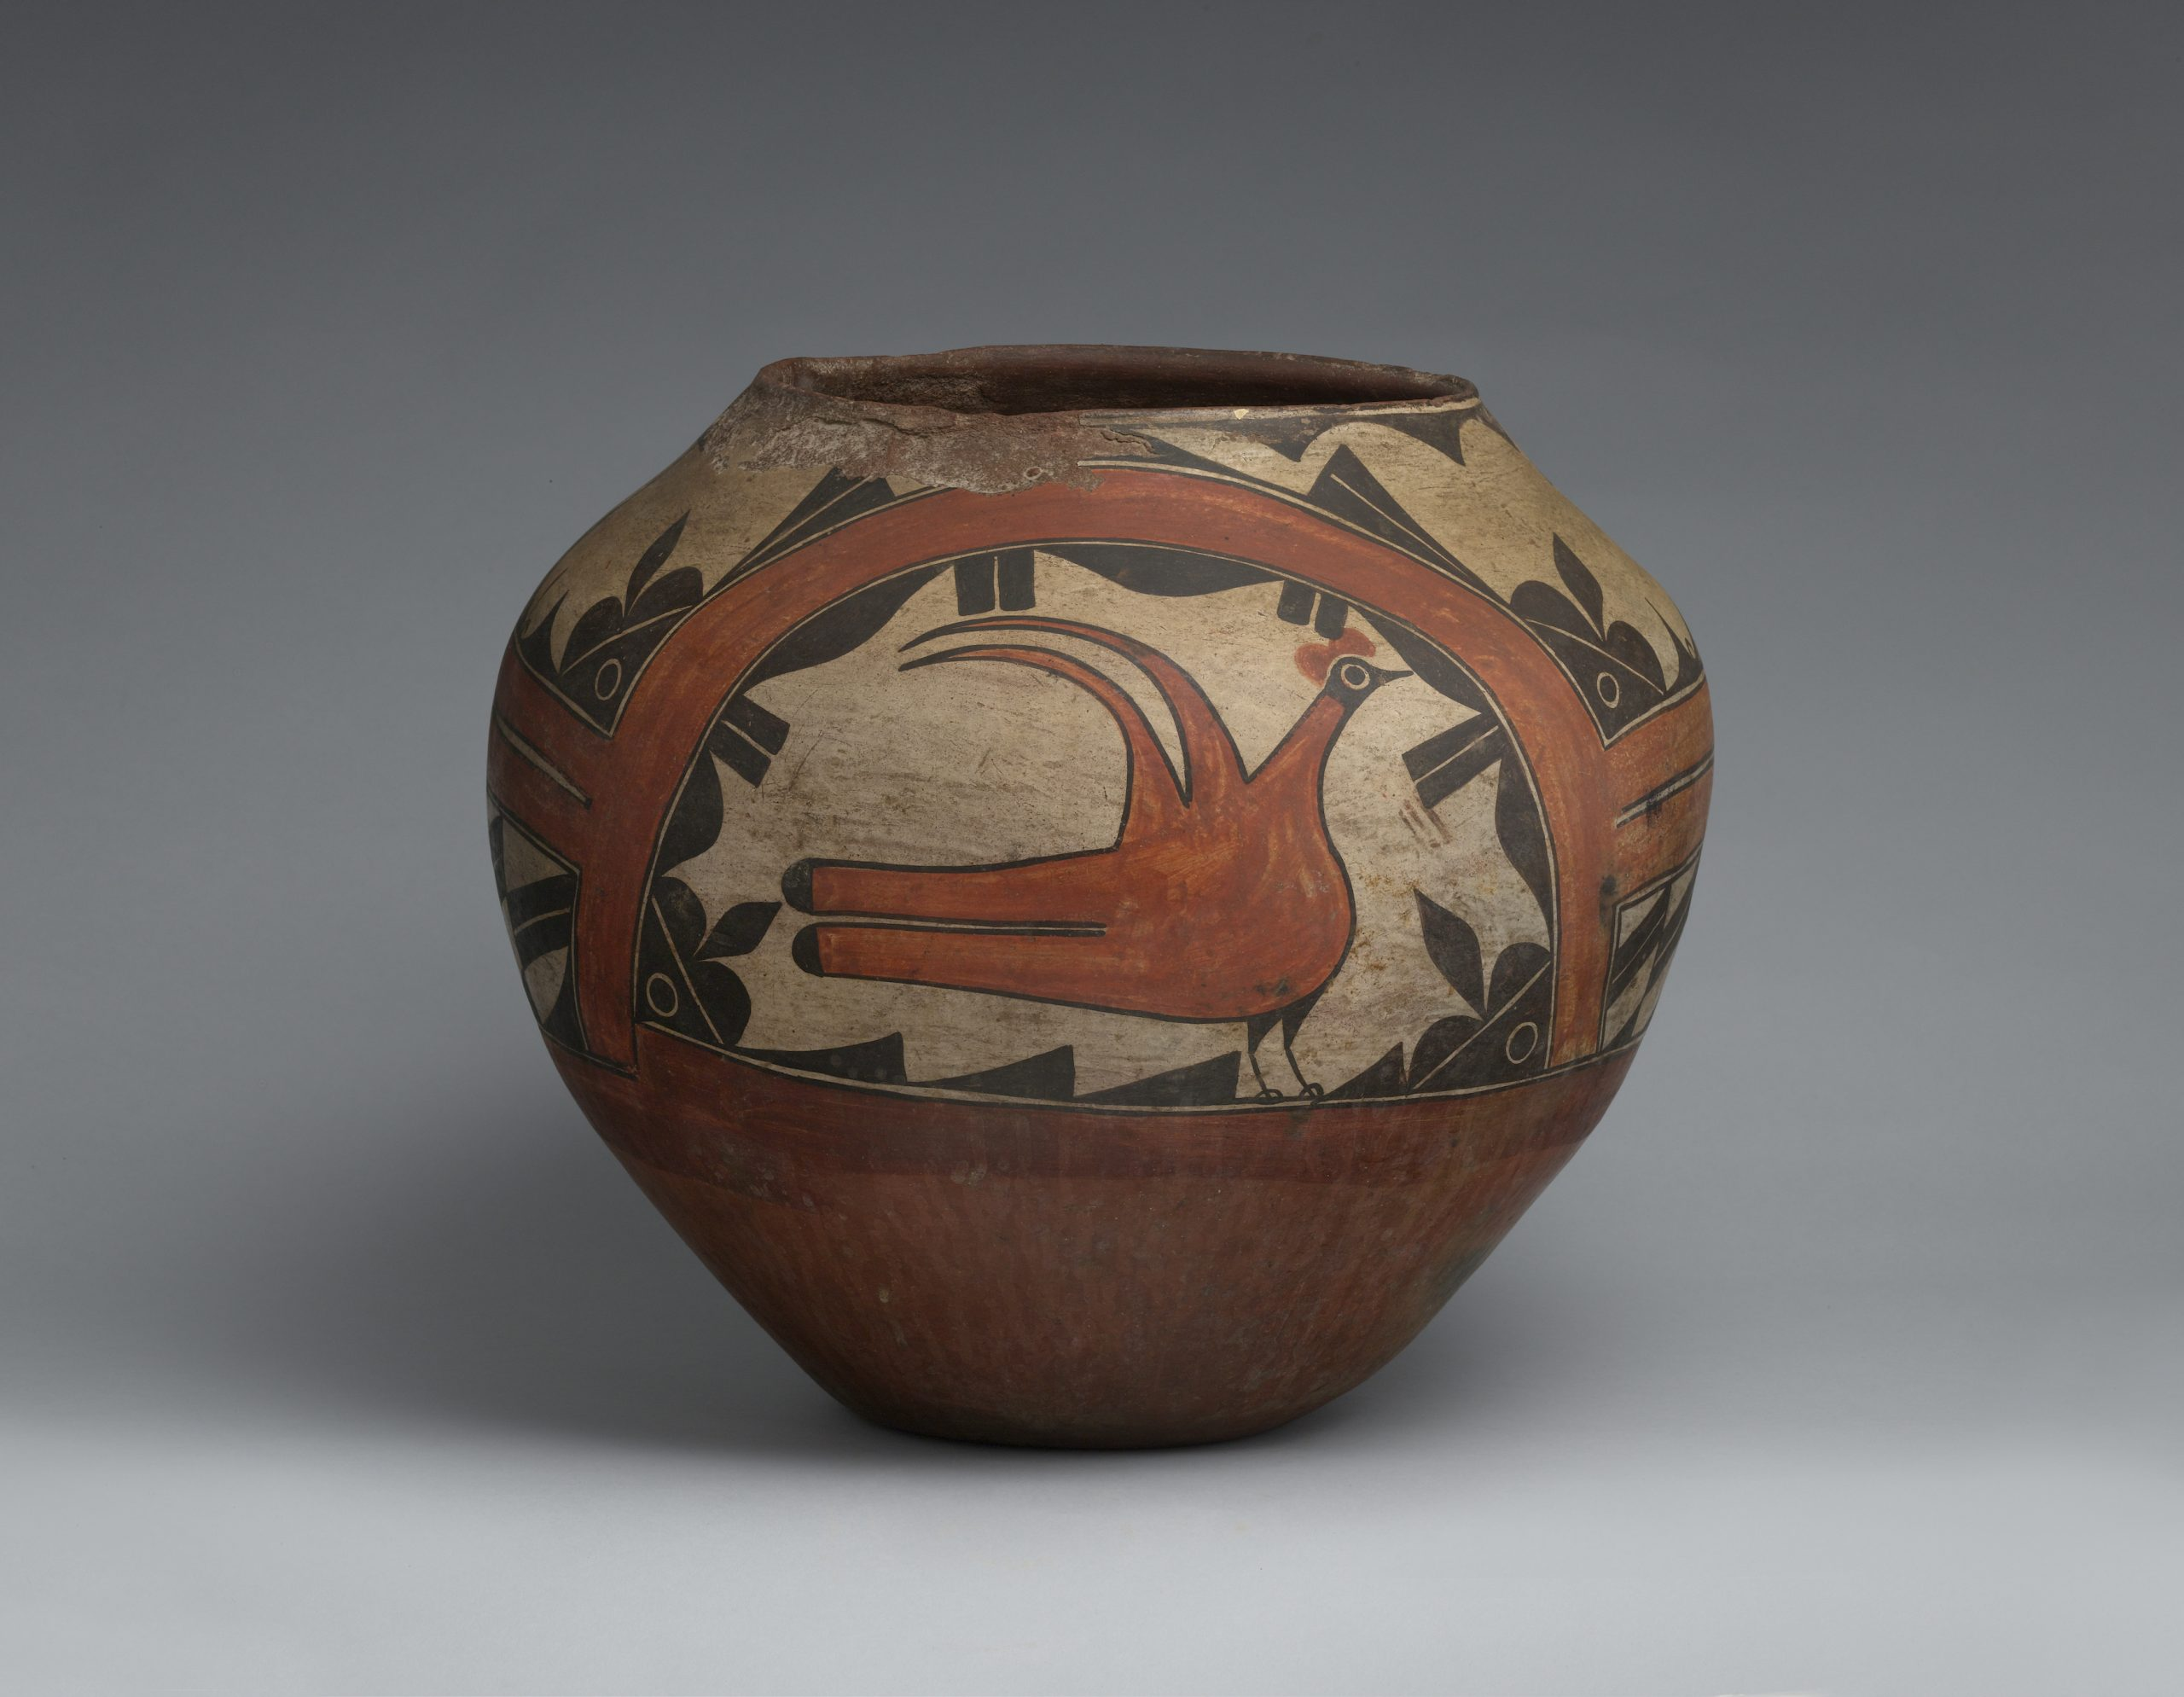 A Zia pot with a large bird in the center surrounded by black and brown patterns.